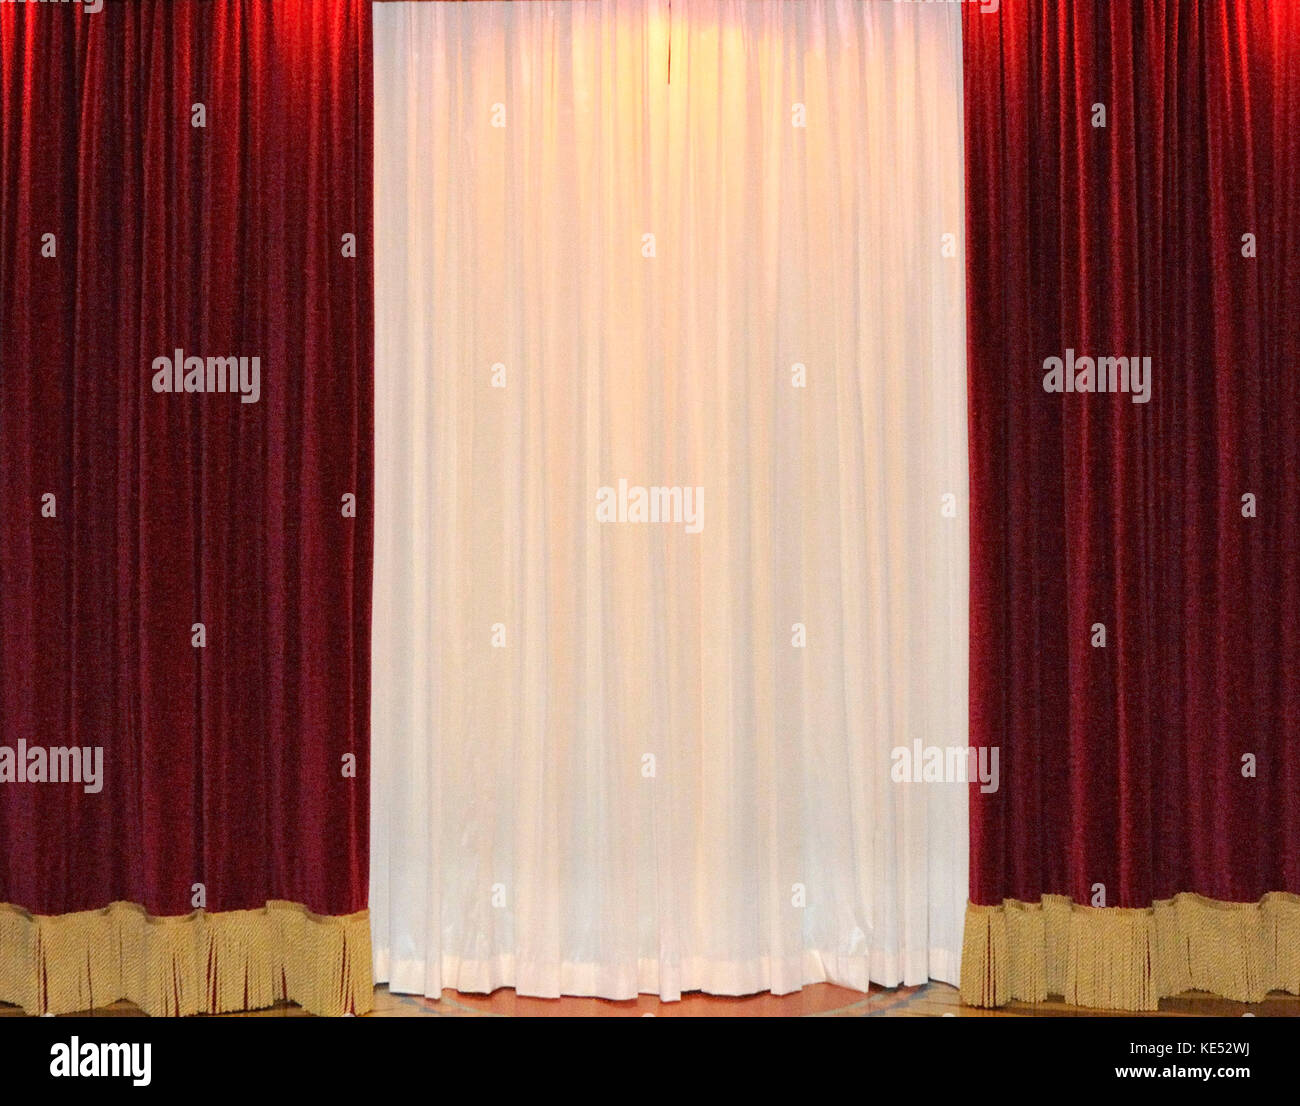 Red velvet window curtains - White And Red Velvet Curtains Cover A Cinema Screen With Pink Columns At Both Sides